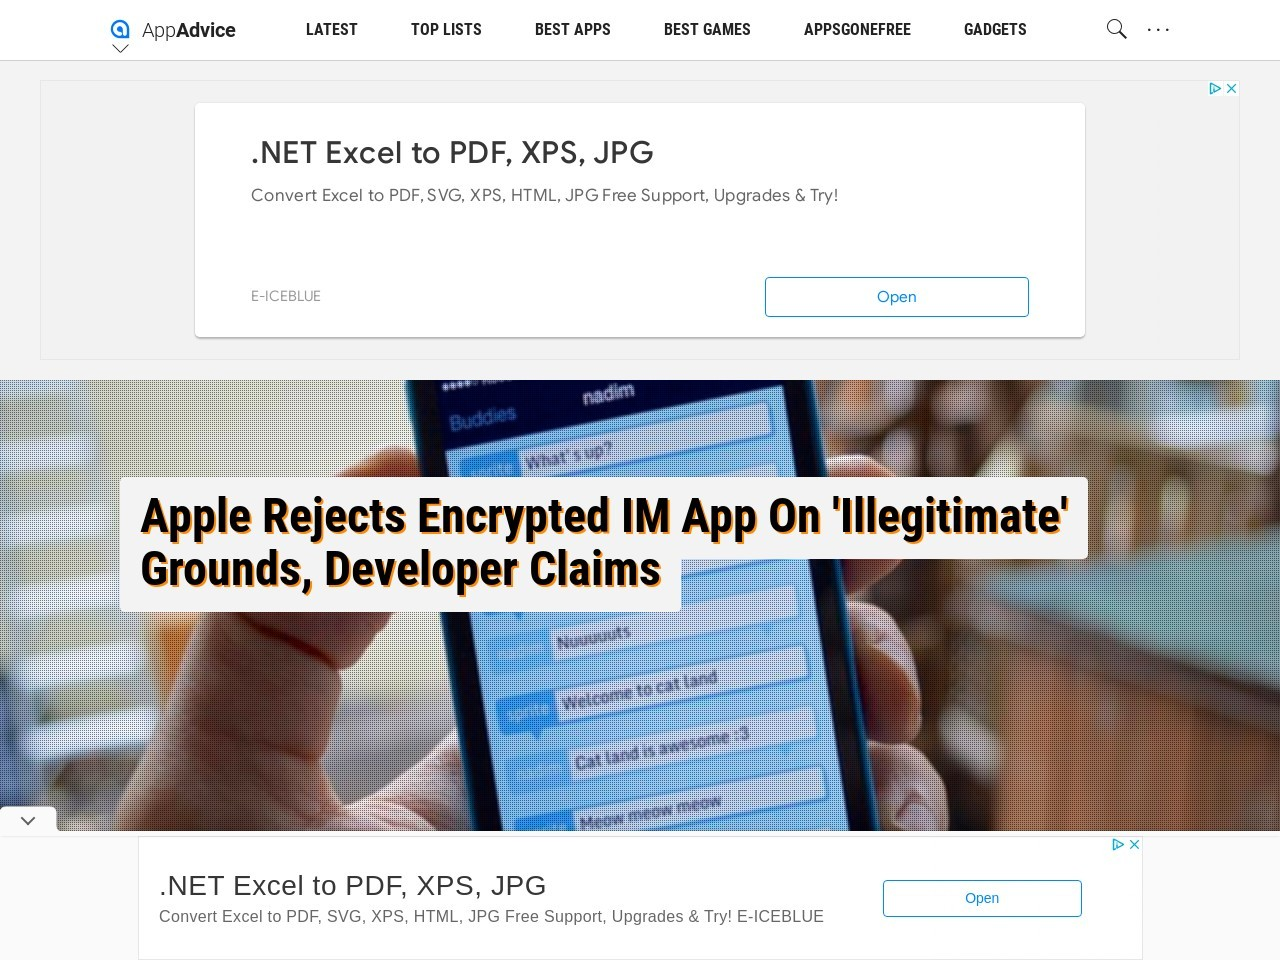 Apple Rejects Encrypted IM App On 'Illegitimate' Grounds …